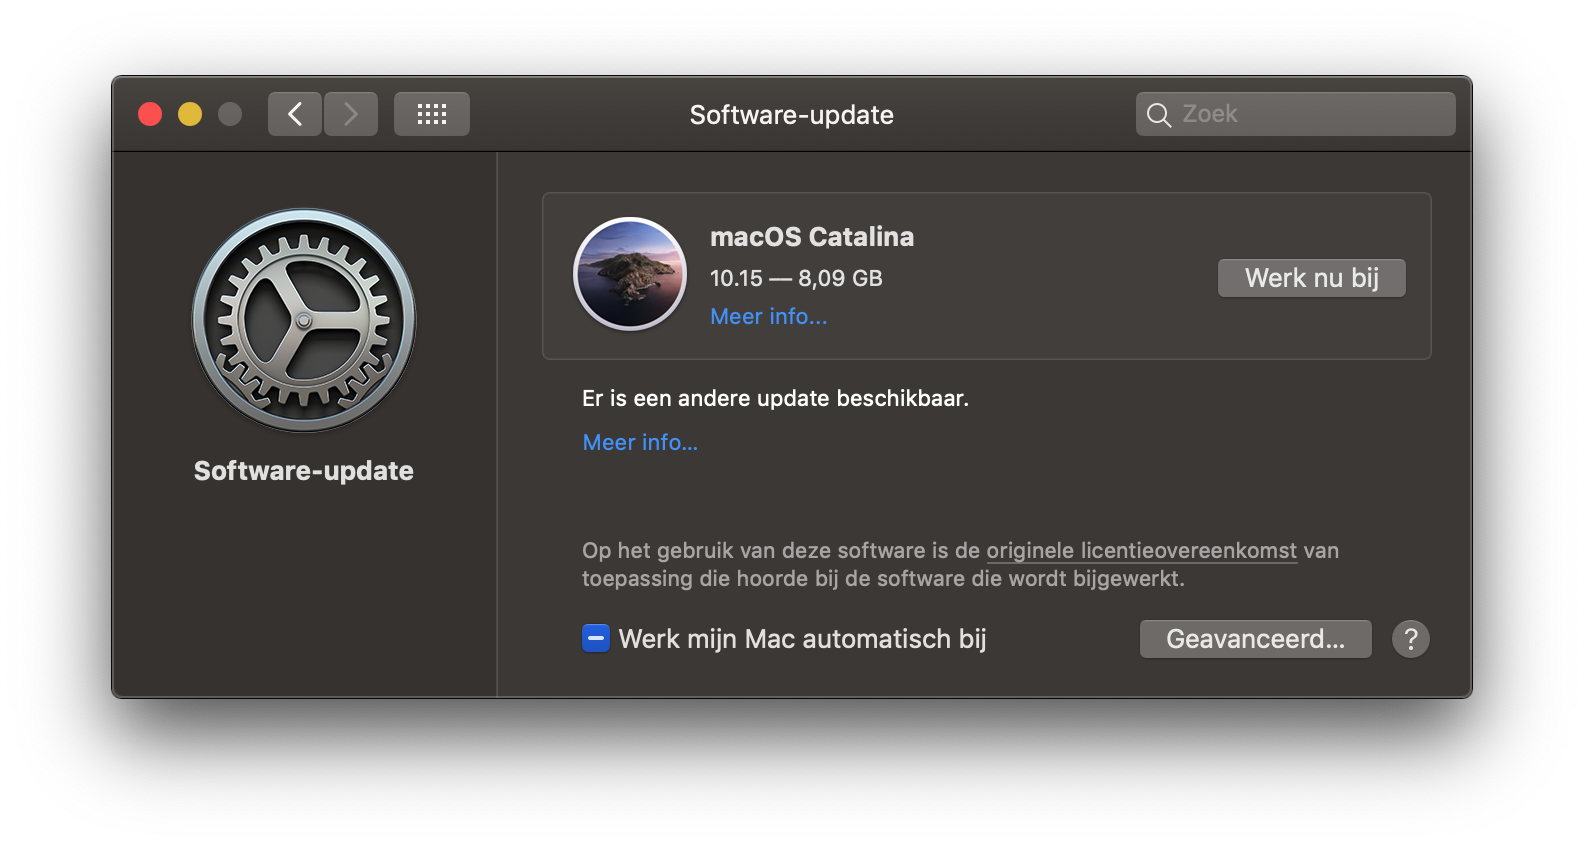 macOS Catalina downloaden.